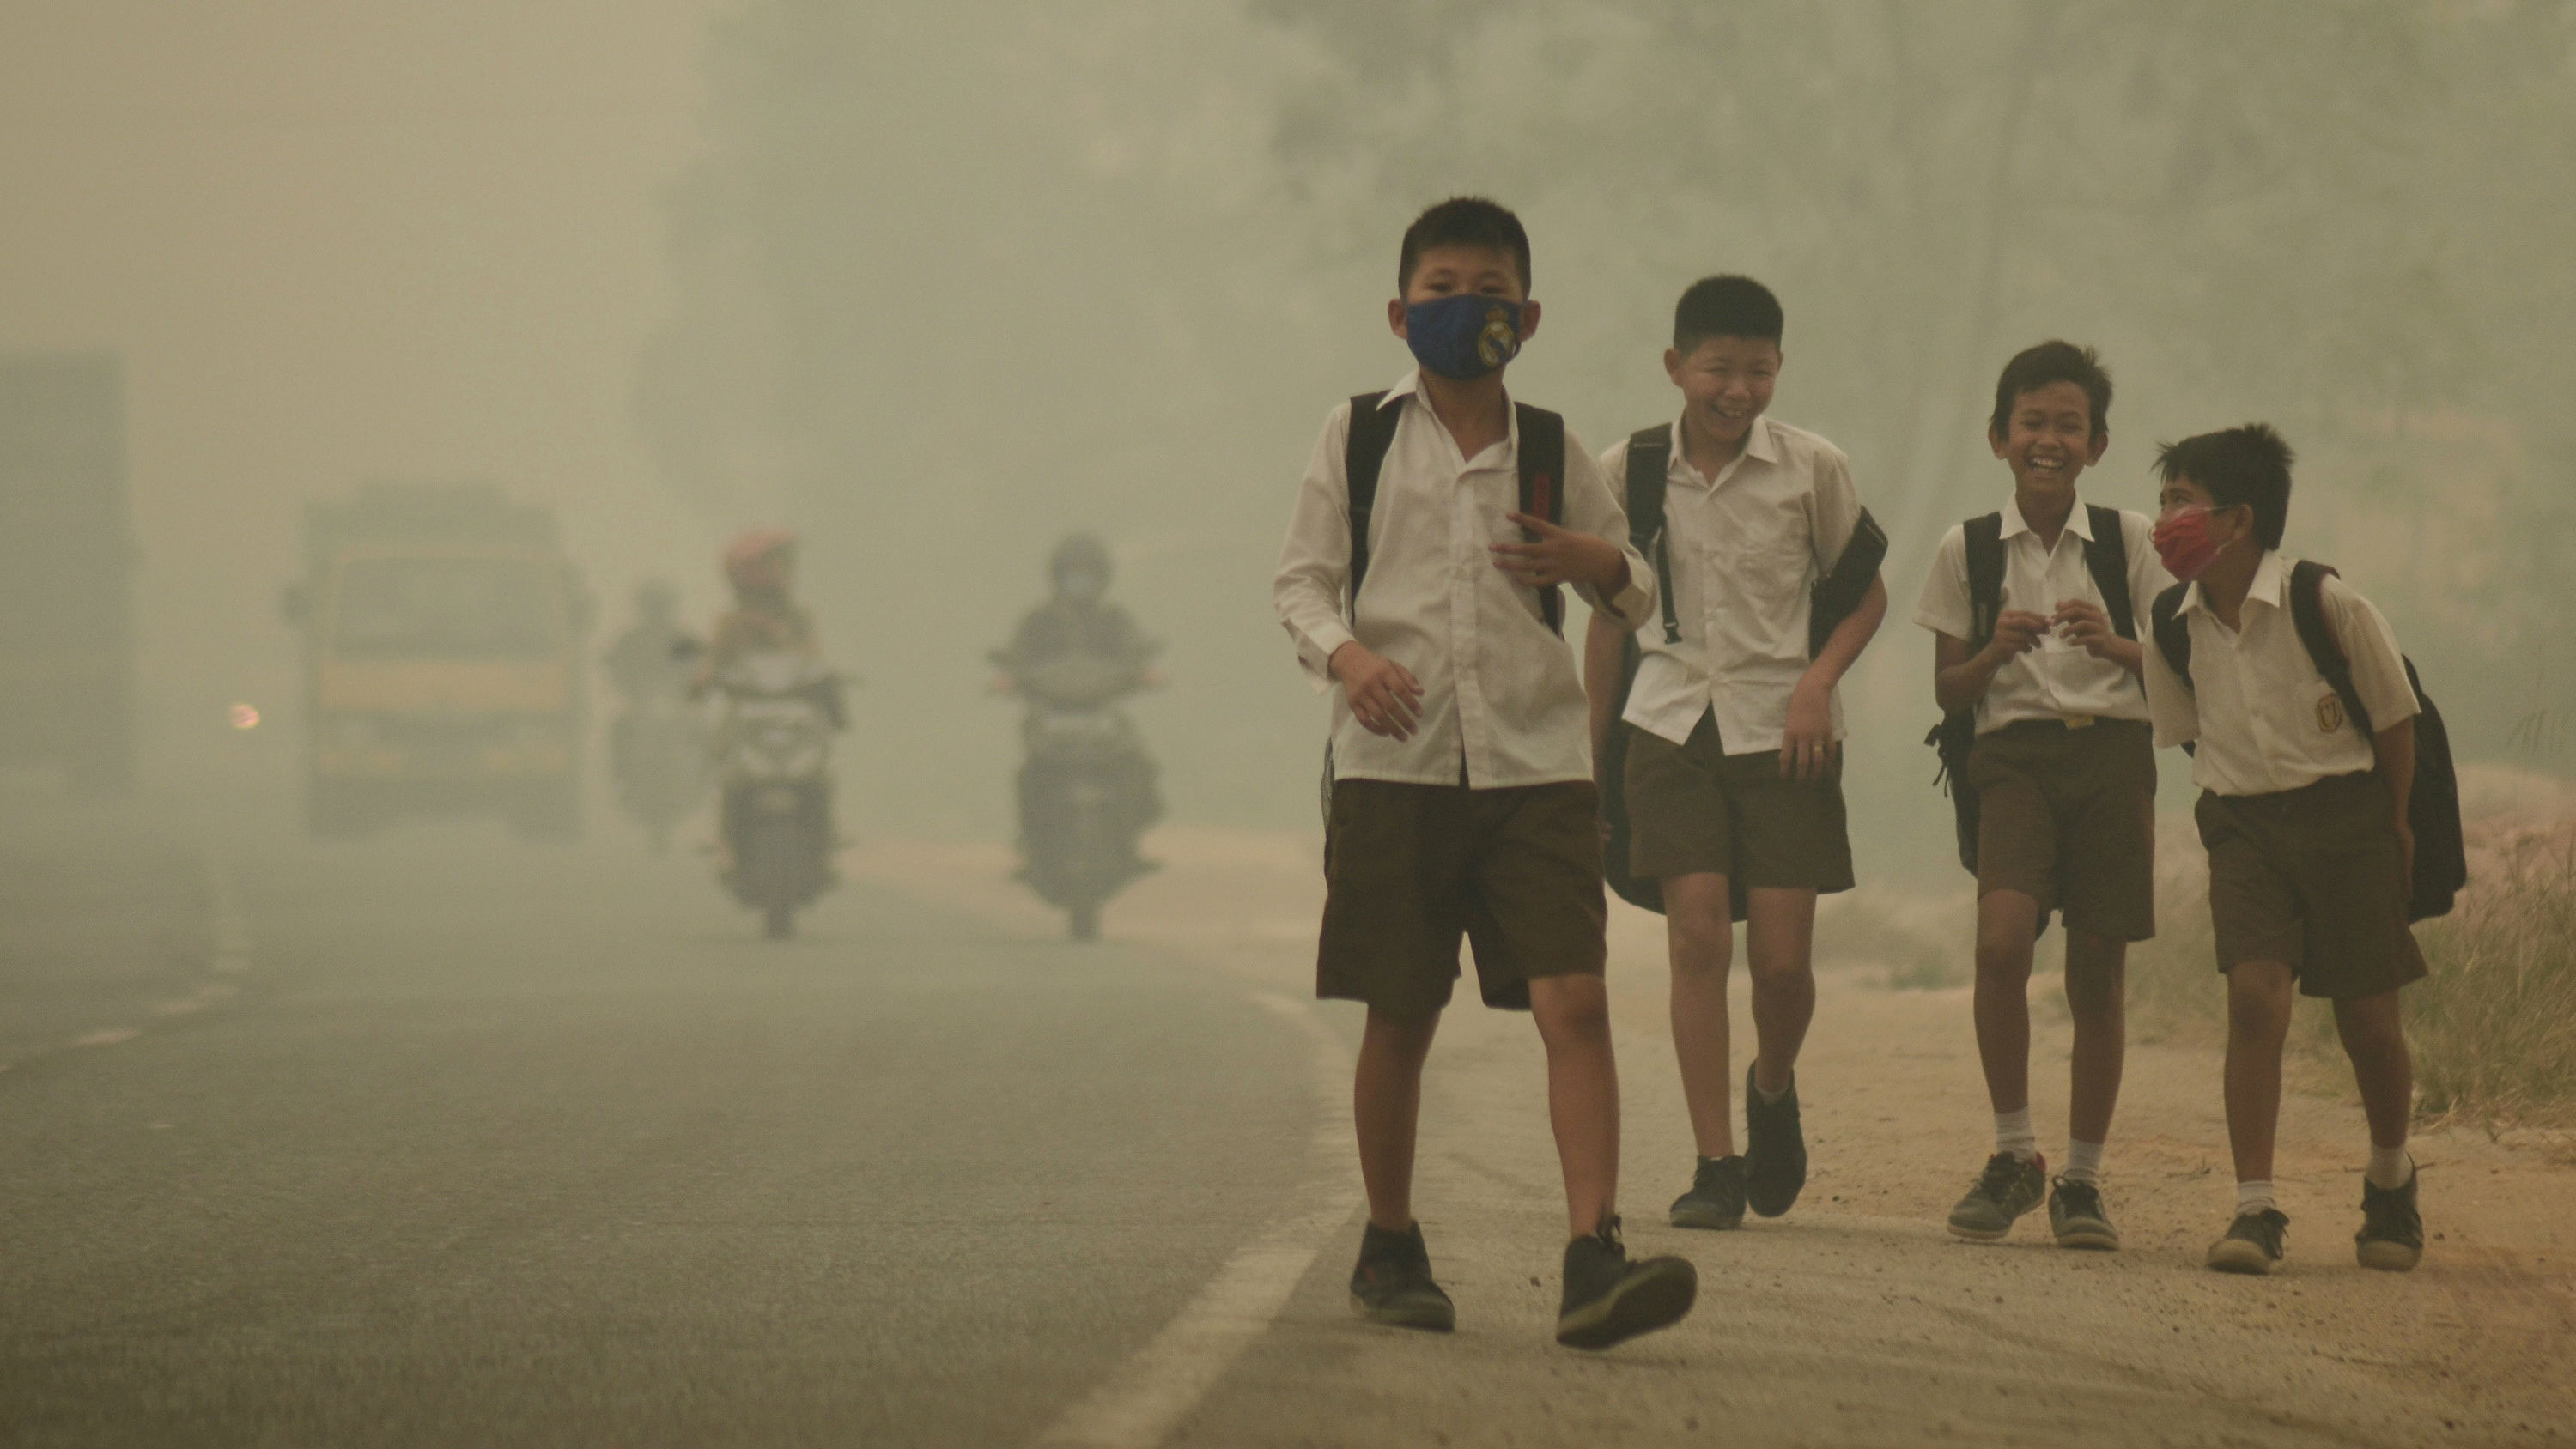 Four children walking along the side of the road with very smoggy air. Two have breathing masks on.